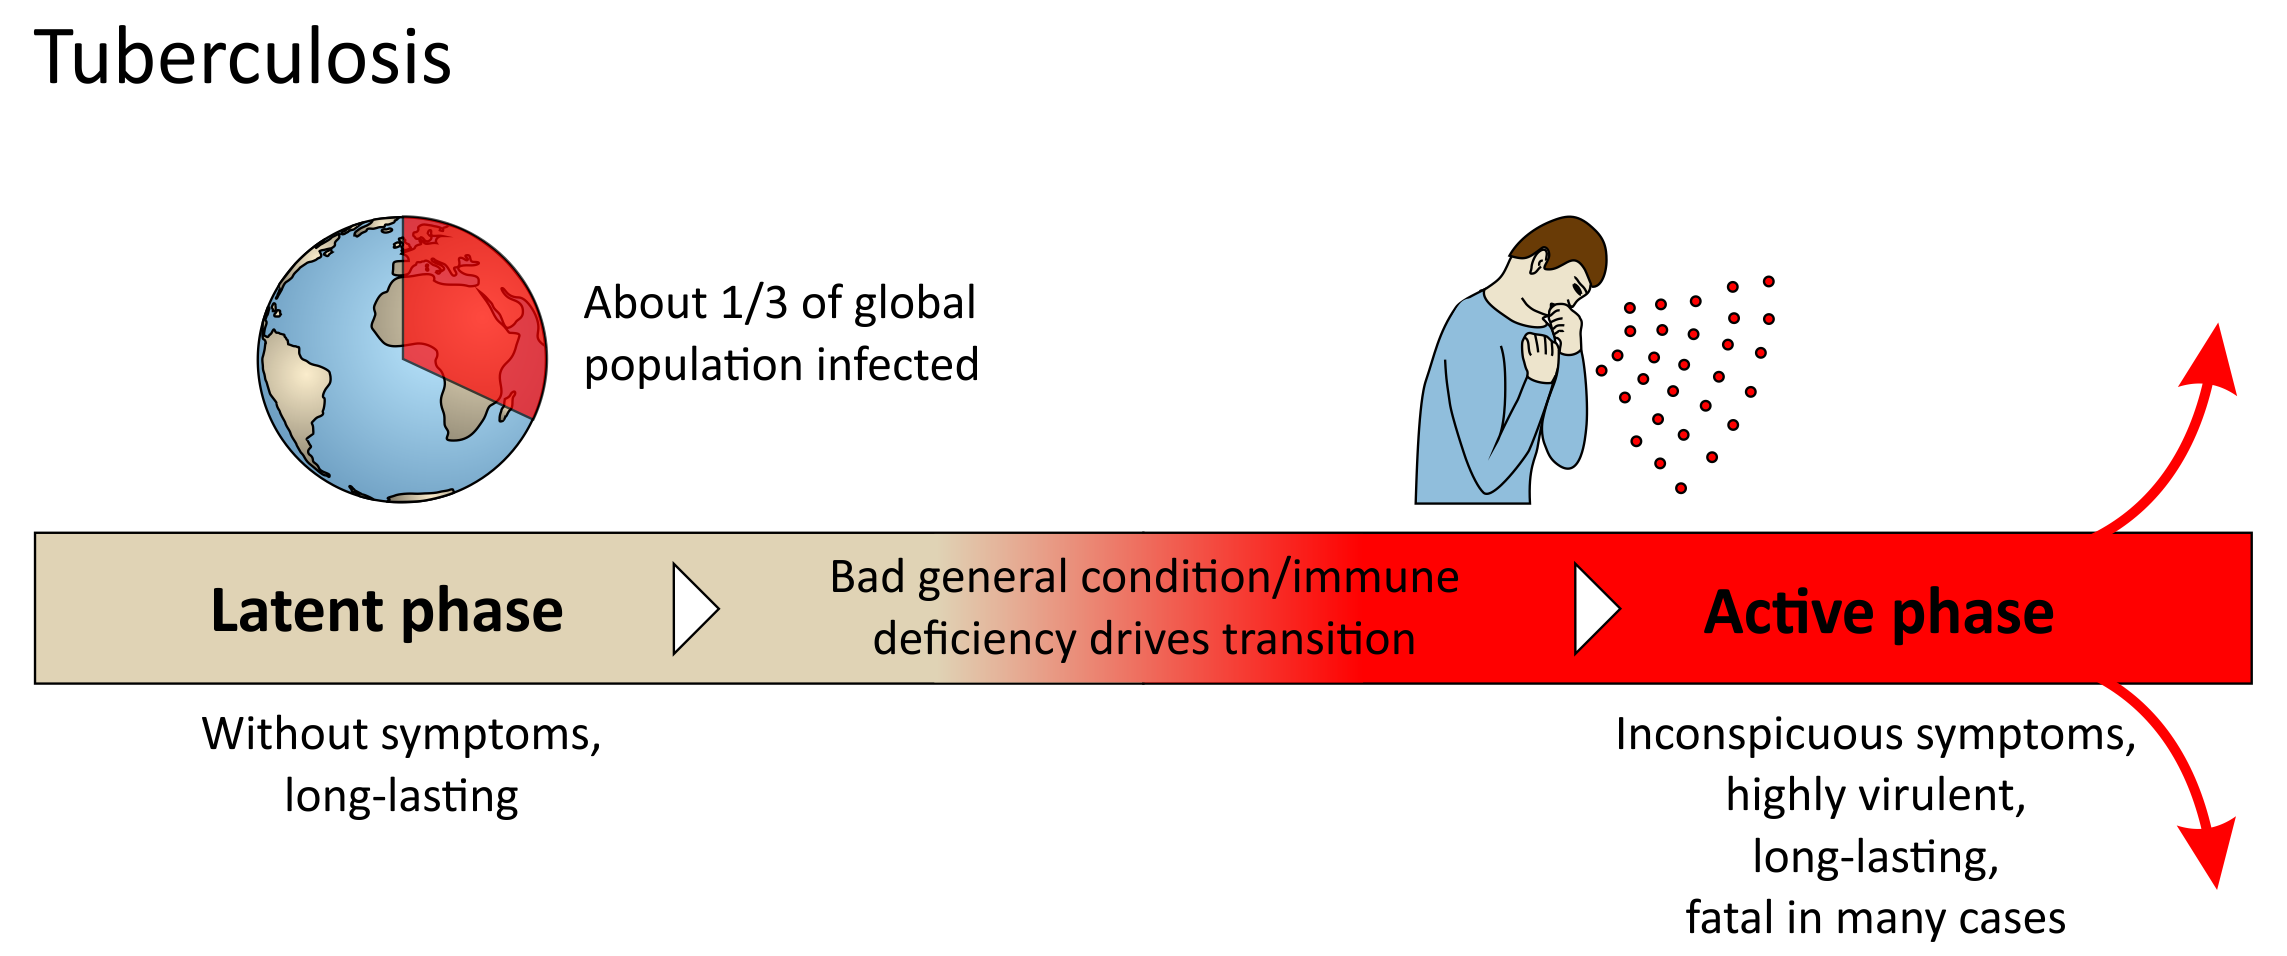 Tuberculosis - course of disease